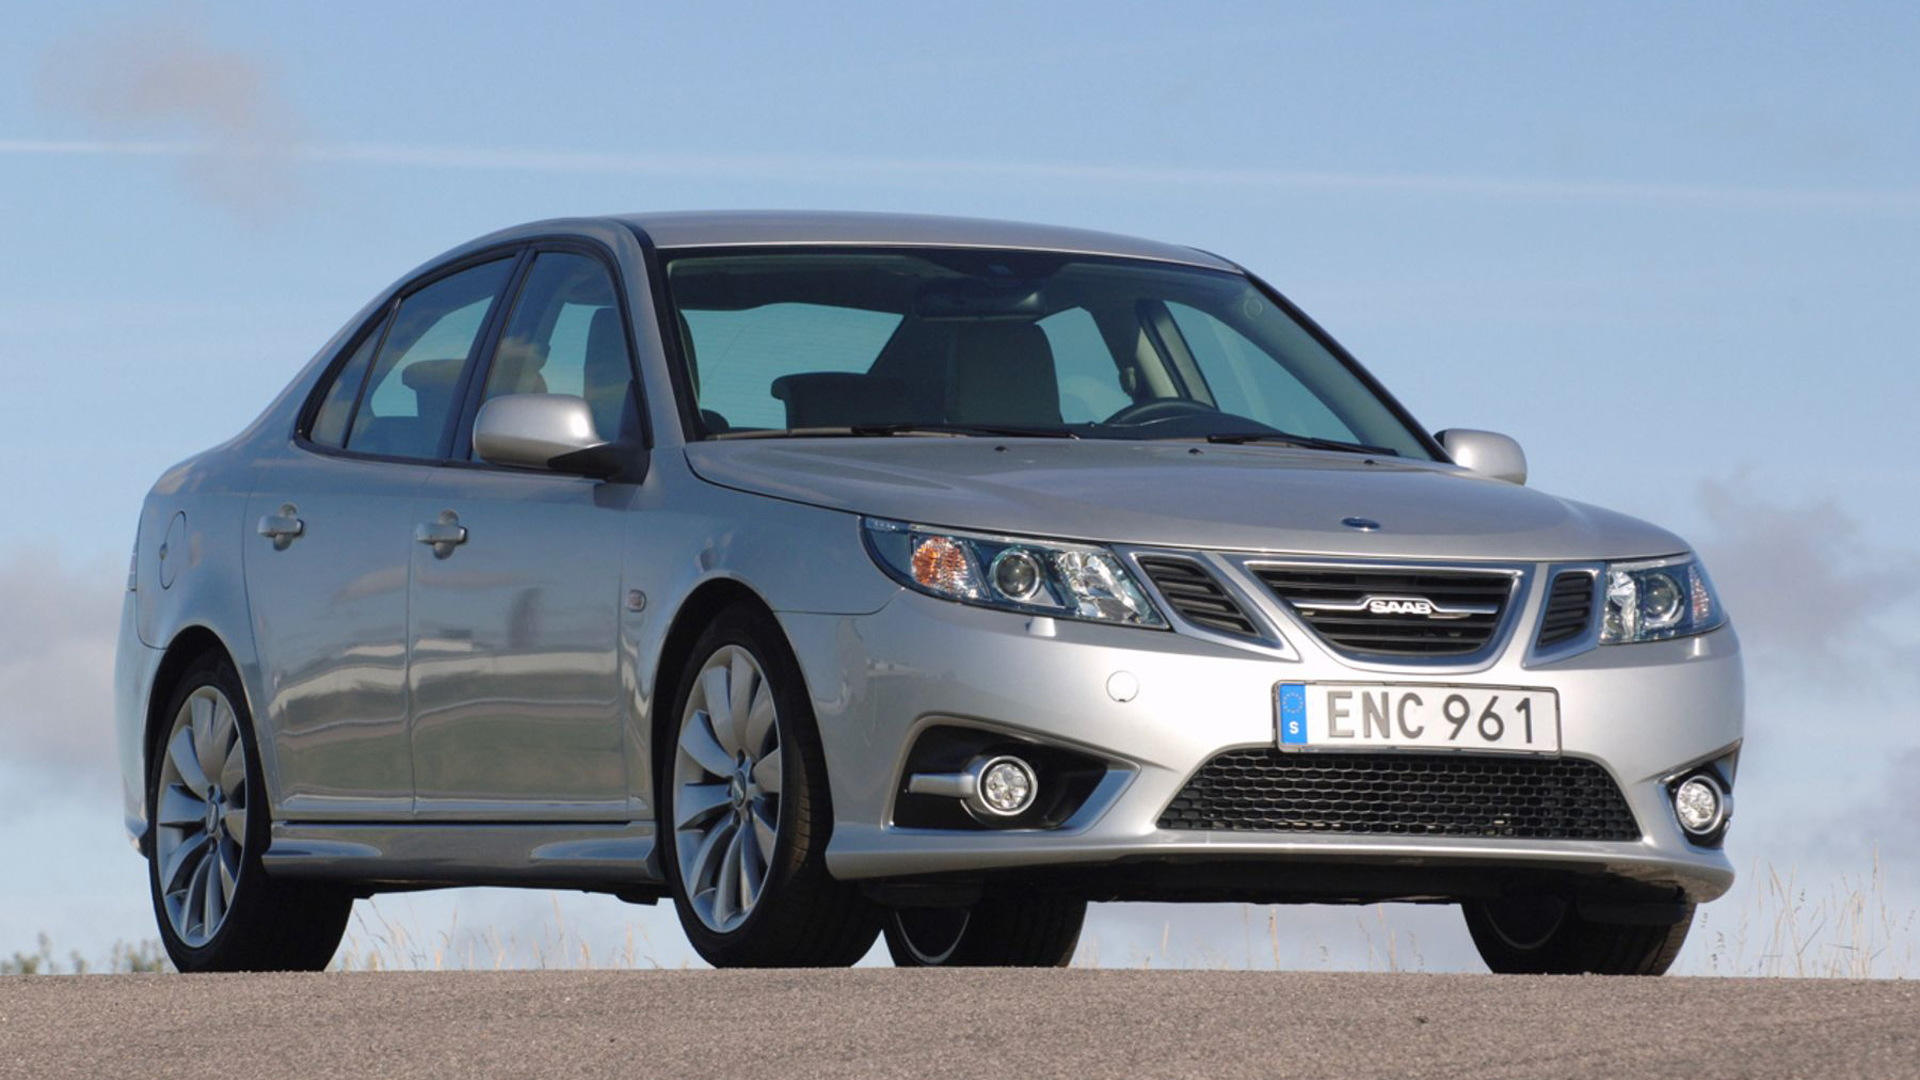 2014 Saab 9-3 Aero - The last production Saab